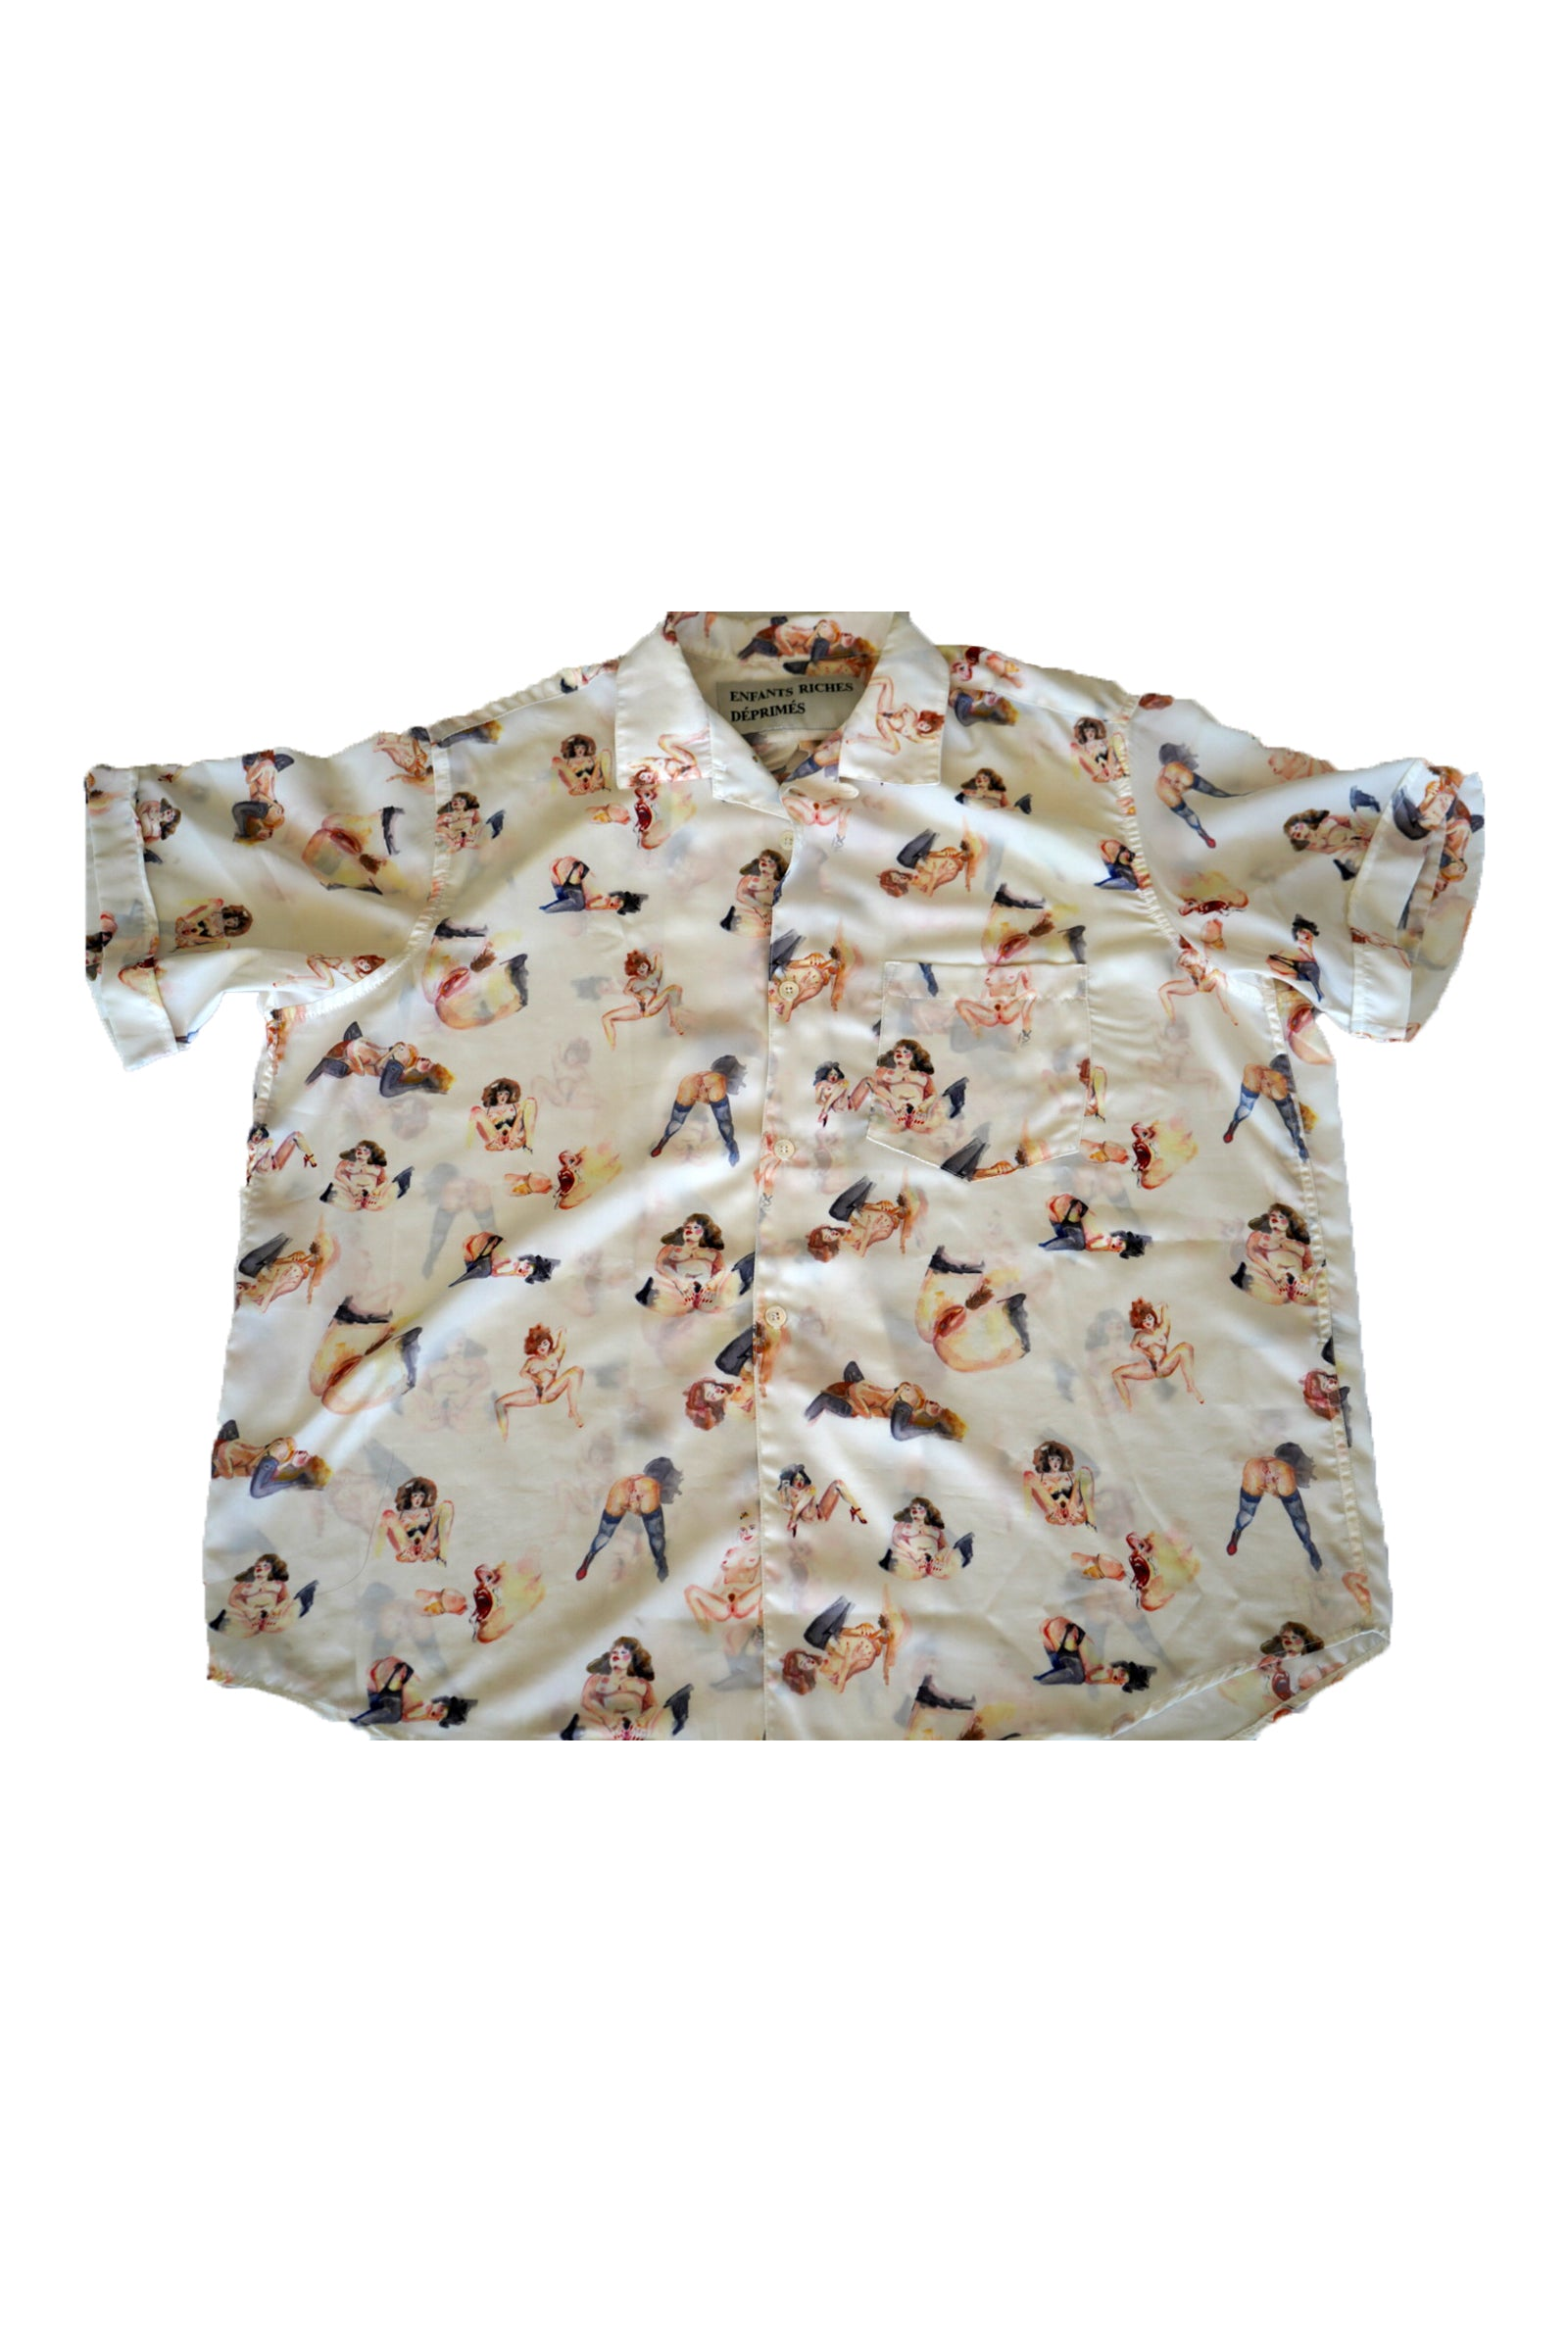 Enfanta Riches Exotic Deprime Button-Up Size XL